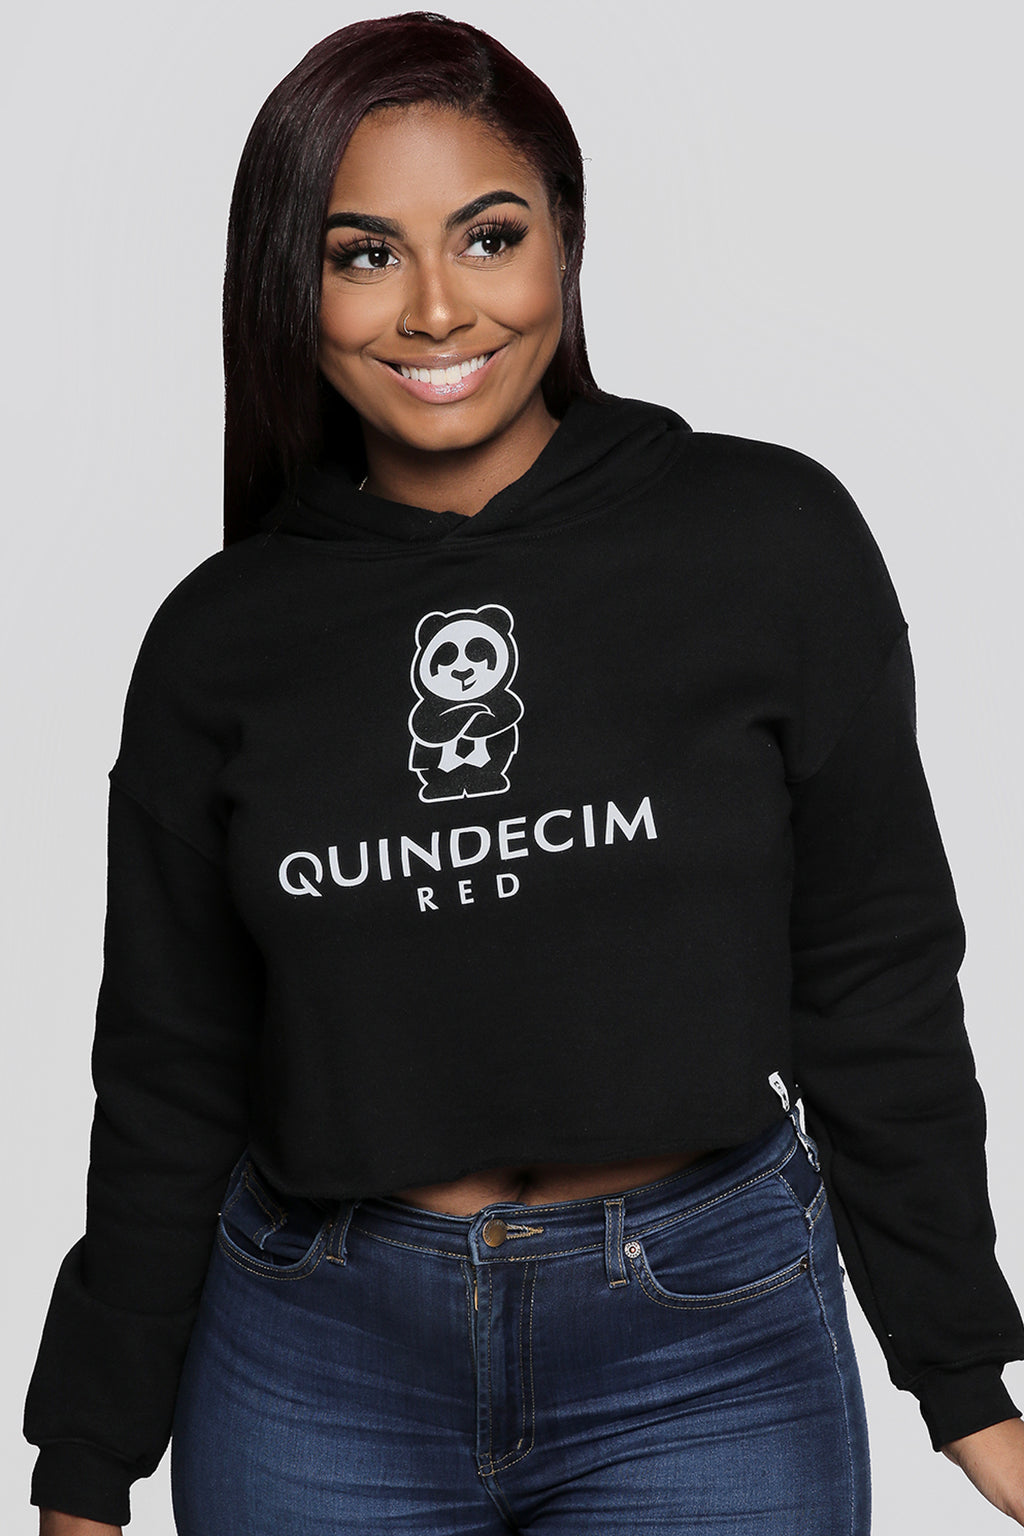 Women's Crop Hood (Black) - Quindecim Red